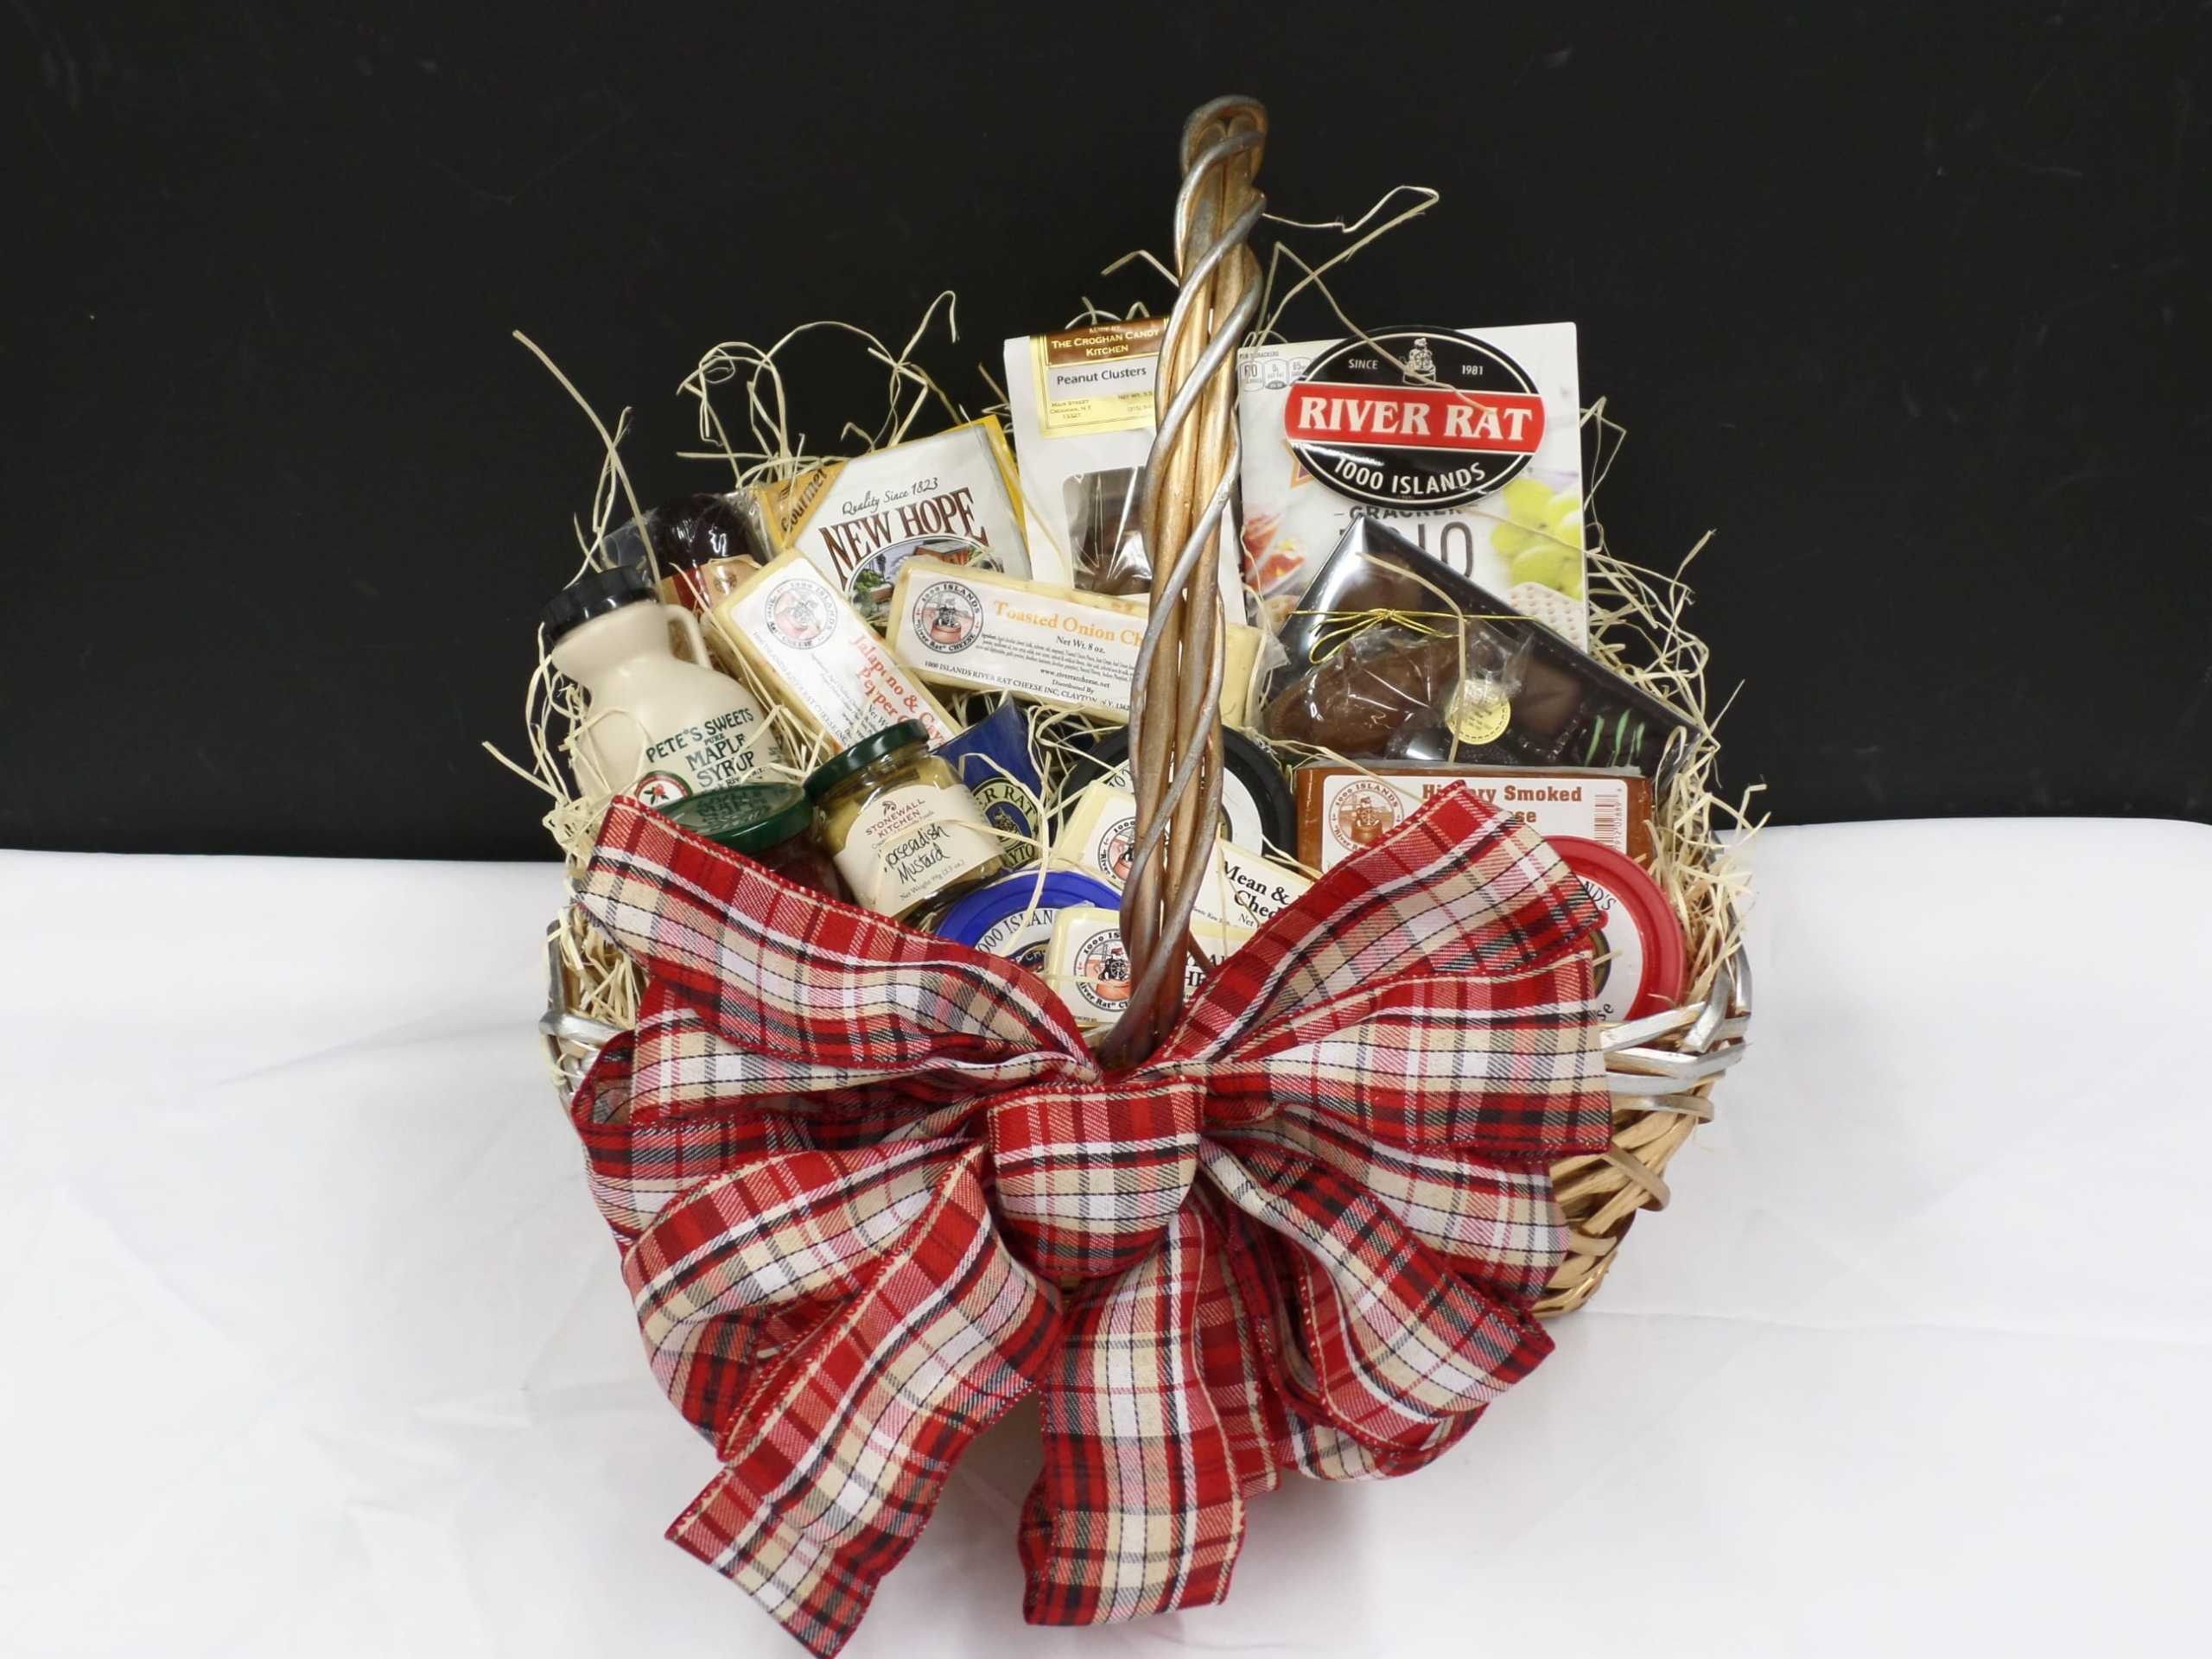 FESTIVE GIFT BASKET <br/> Donated by: 1000 ISLANDS RIVER RAT CHEESE <br/> Valued at: $100